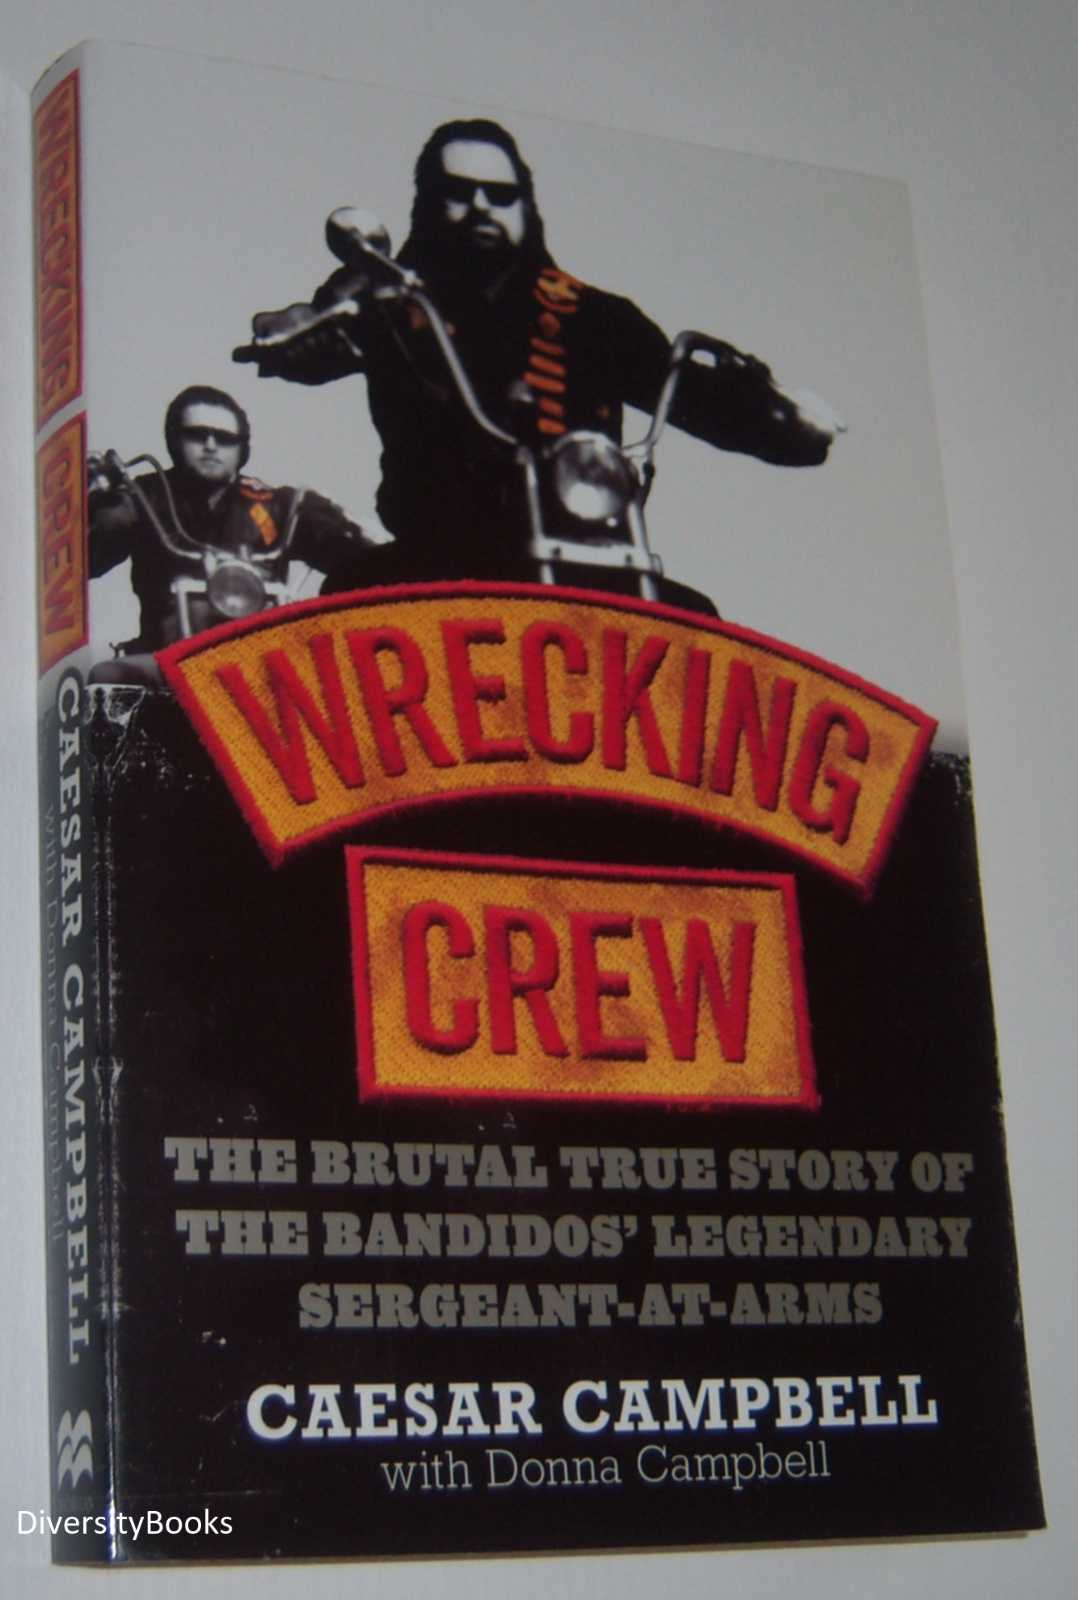 Image for WRECKING CREW: The Brutal True Story of the Bandidos' Legendary Sergeant-At-Arms